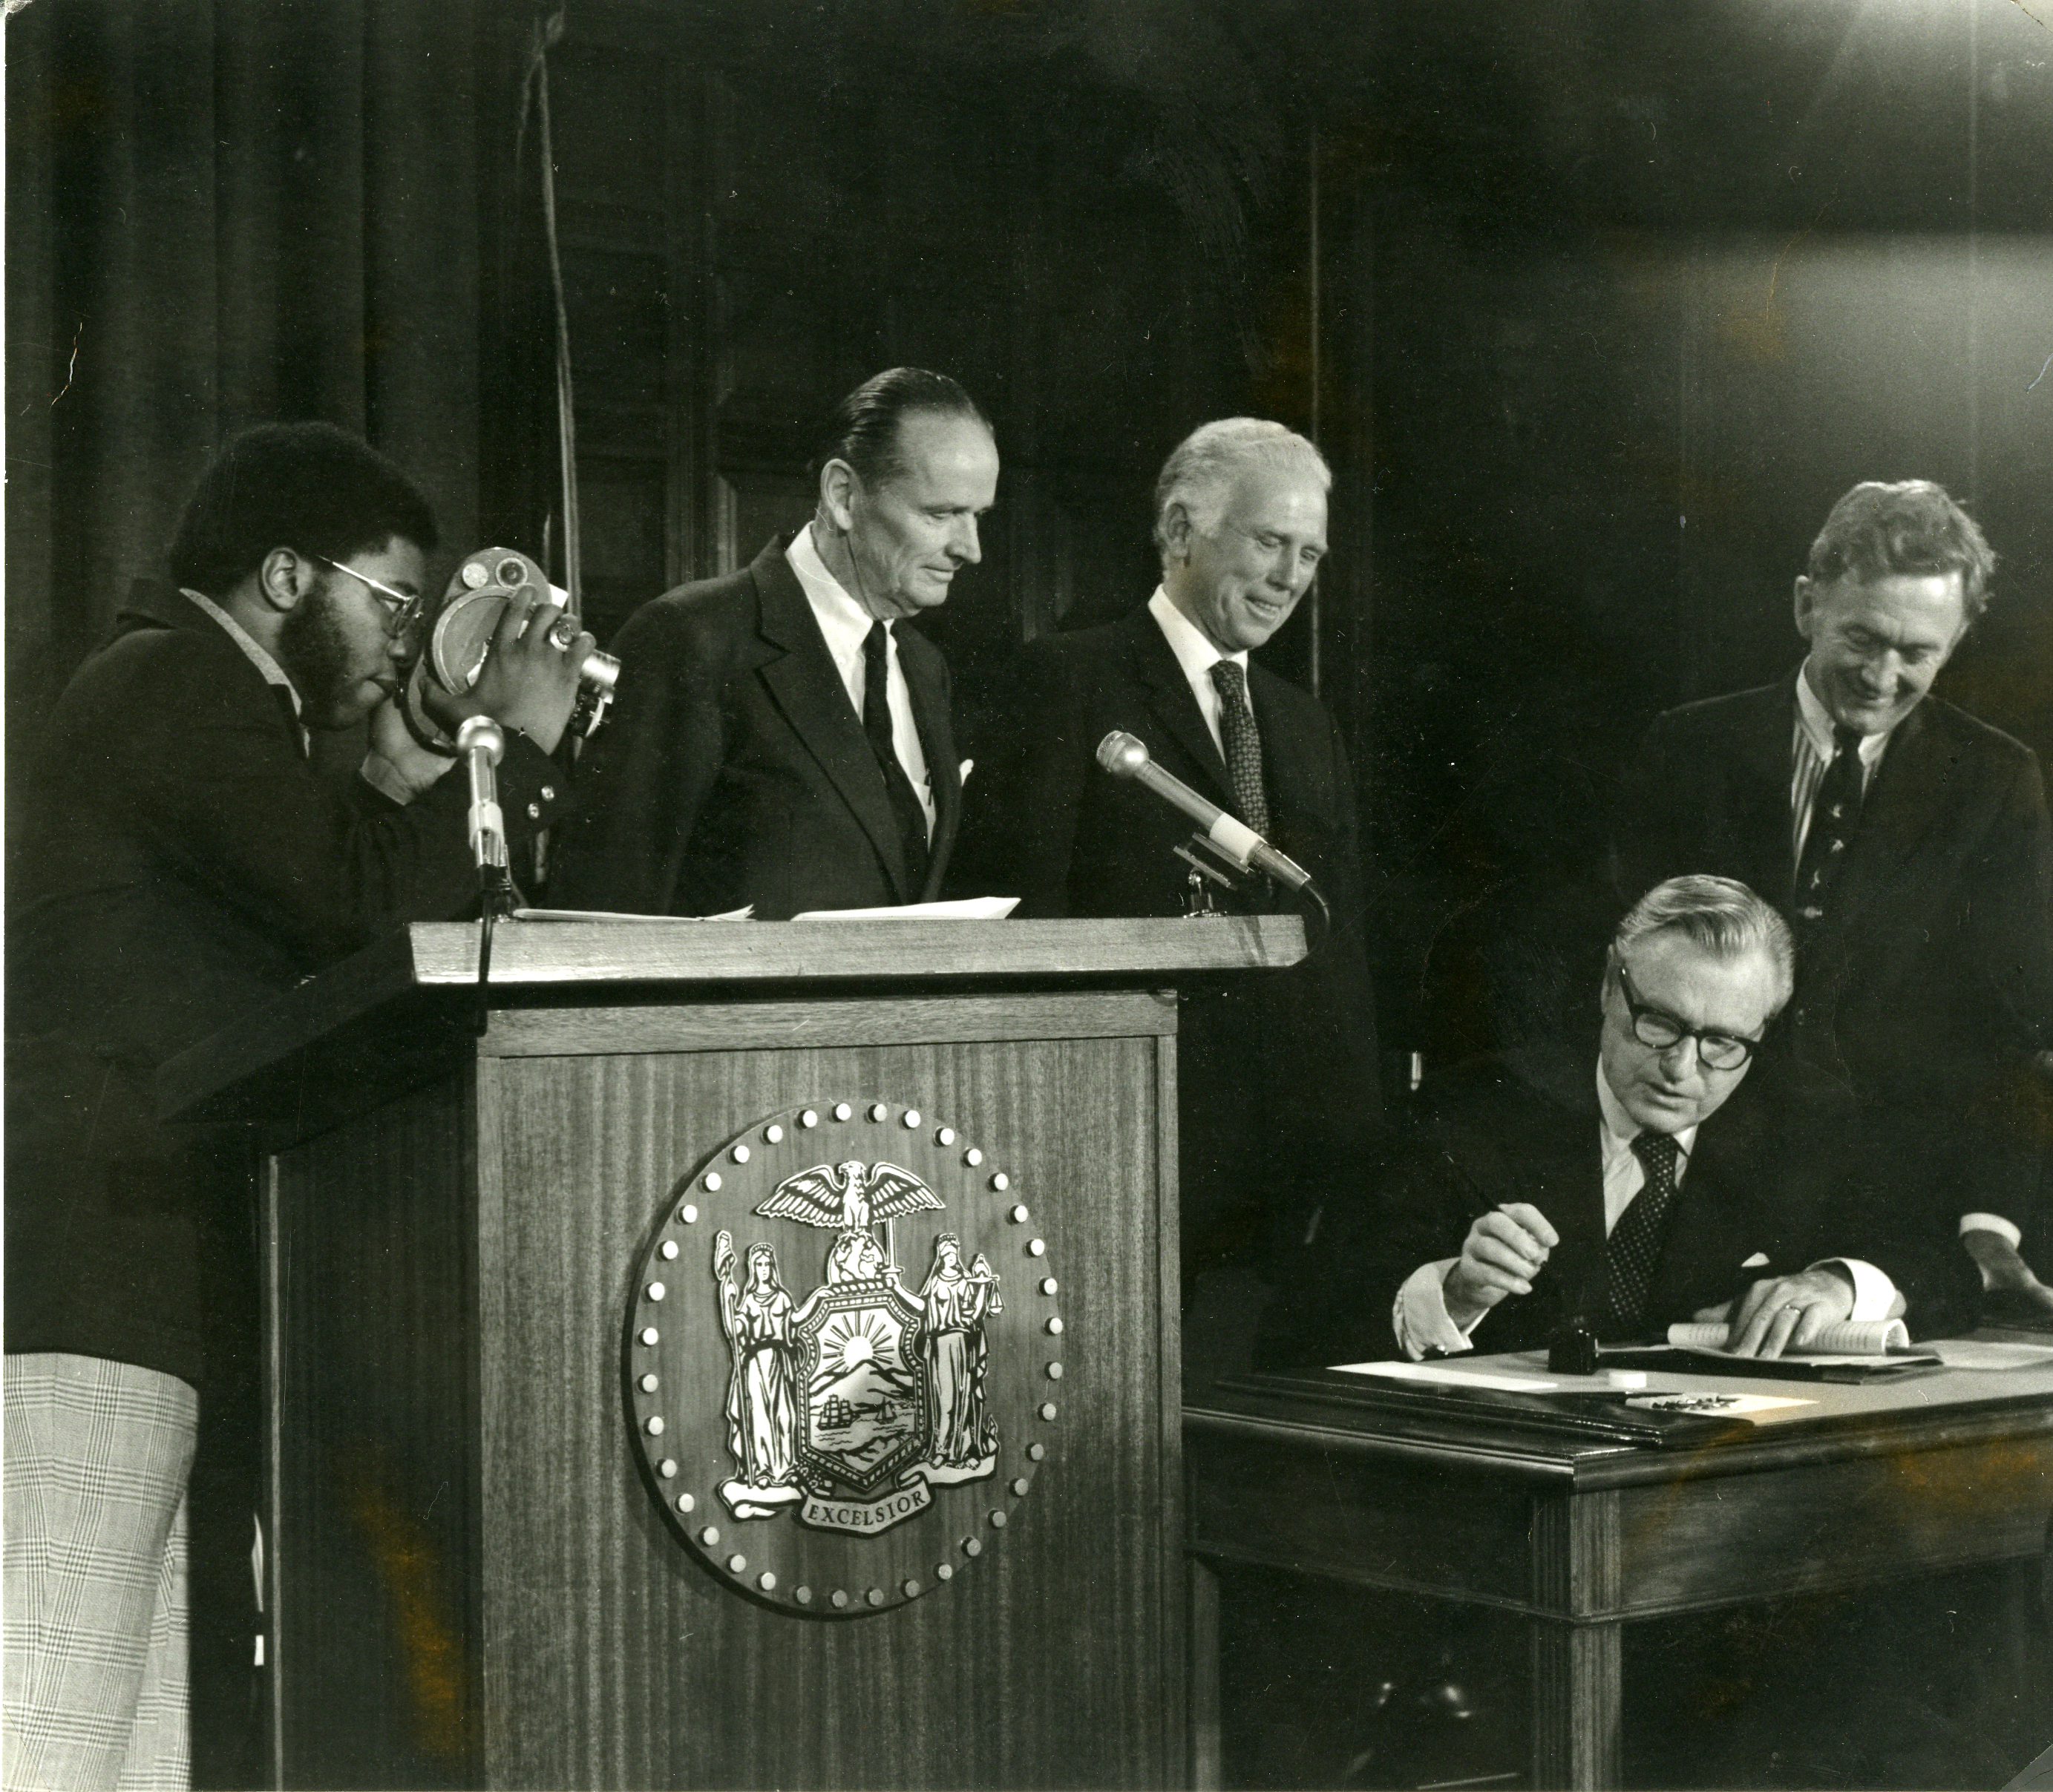 Governor Nelson Rockefeller signs the Adirondack Park Agency's Private Land Use and Development Plan into law in 1973. Behind him stand APA Chairman Richard W. Lawerence (left), Perry Duryea (center) and Bernard C. Smith (Right), Chairman of the New York State Senate's Environmental Conservation Committee.